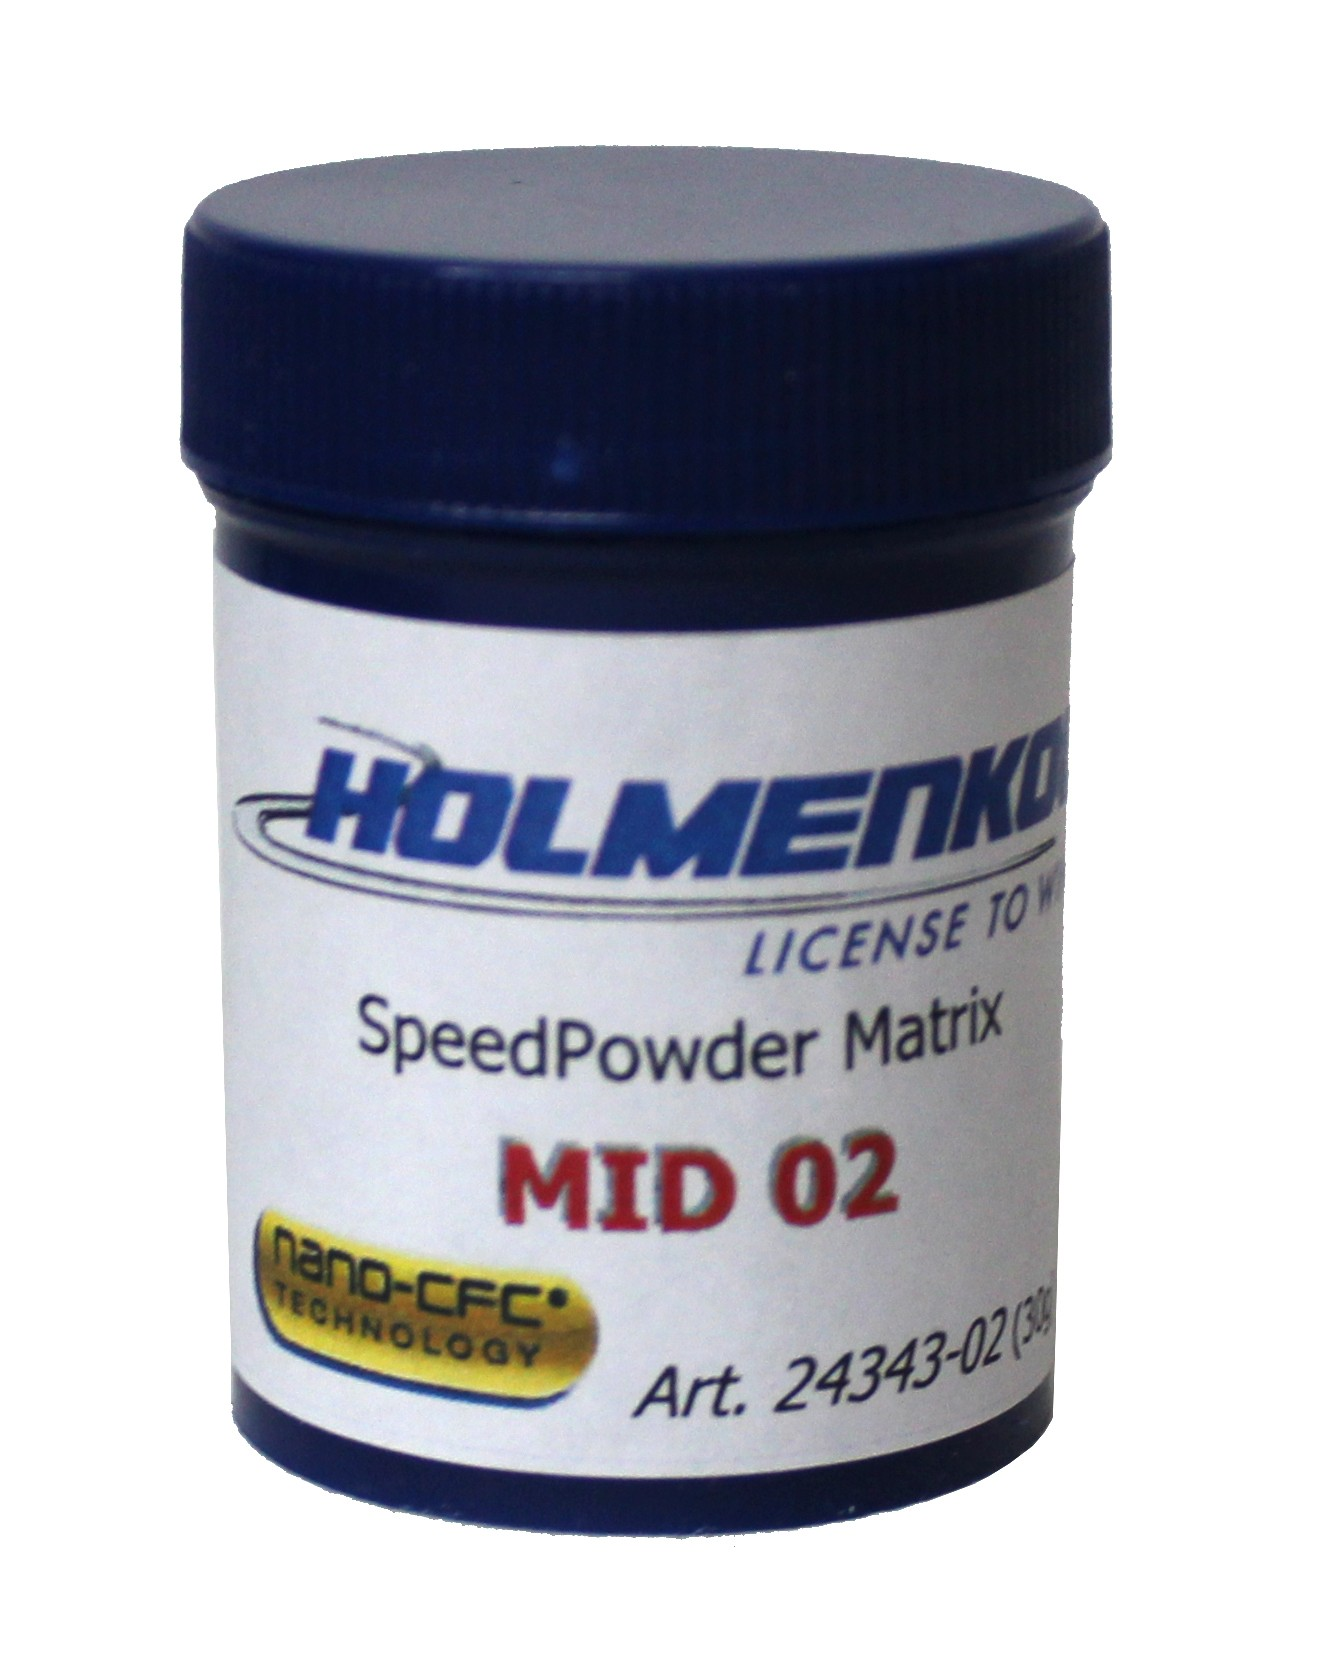 Holmenkol CFC prašek Speed Powder Matrix MID 02